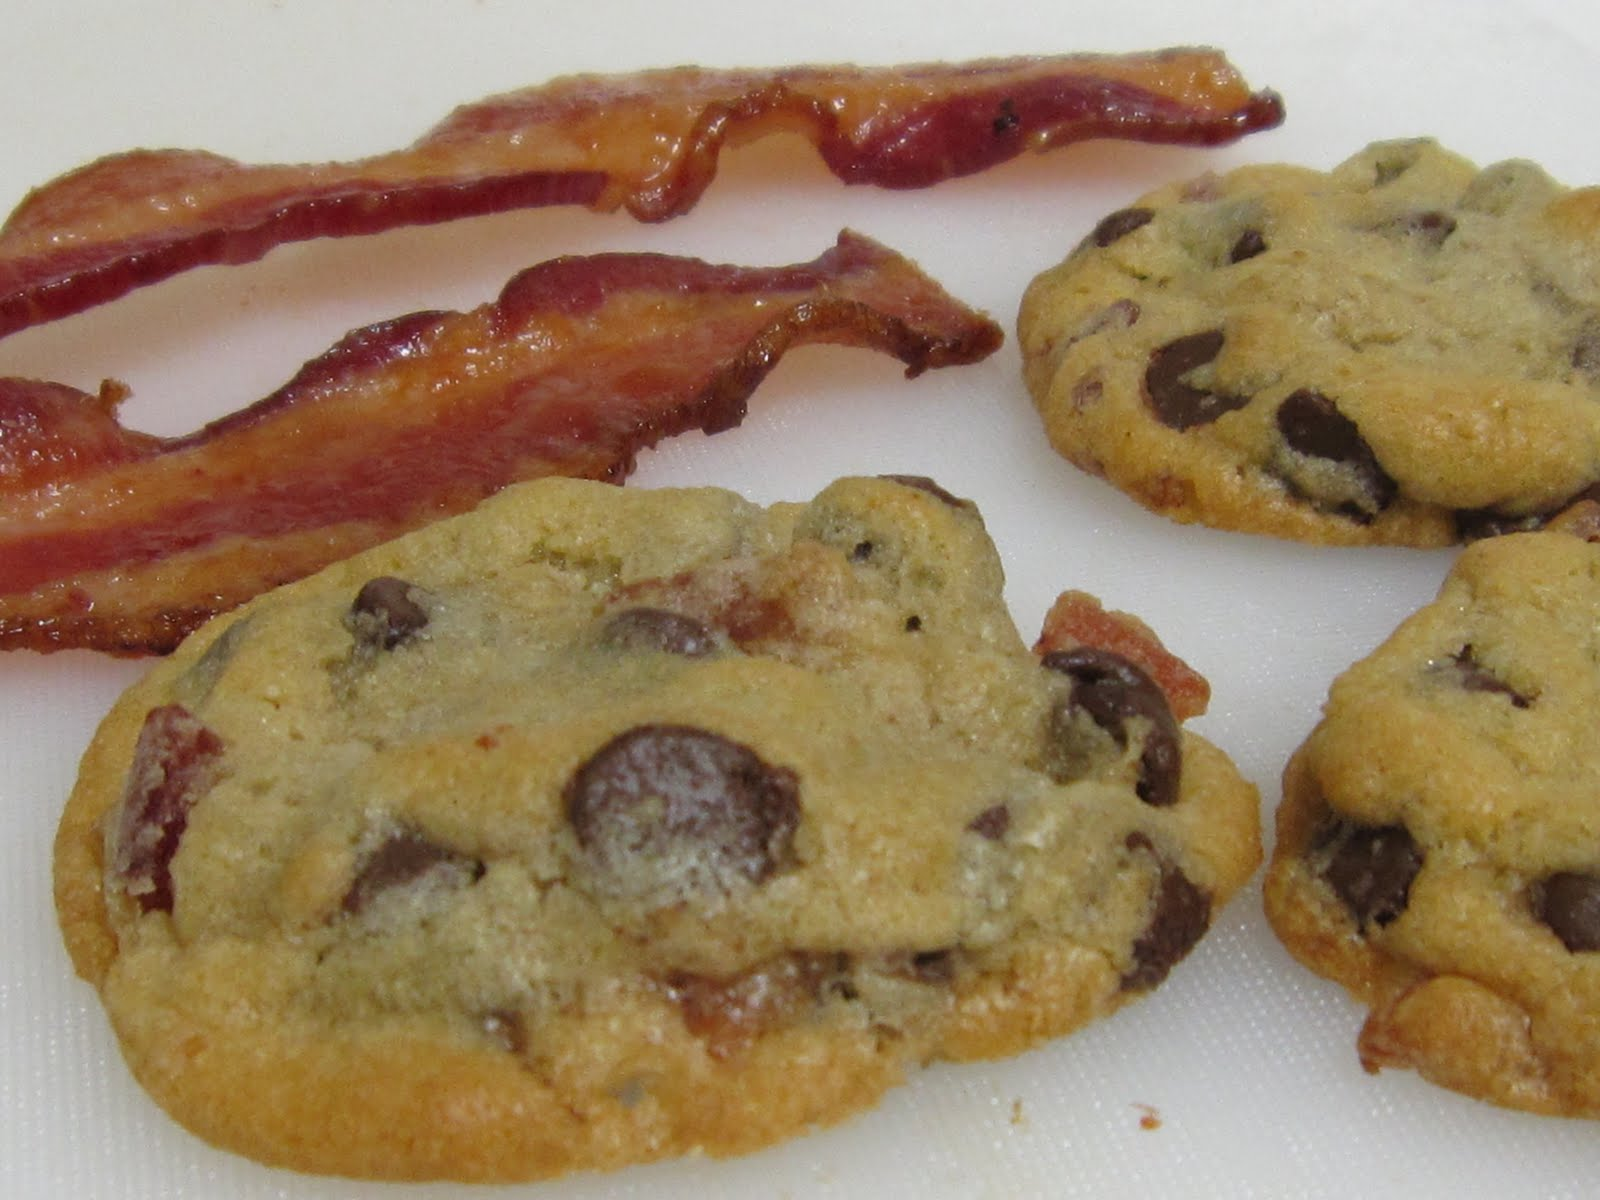 HANNAH IN THE KITCHEN: Bacon Chocolate Chip Cookies